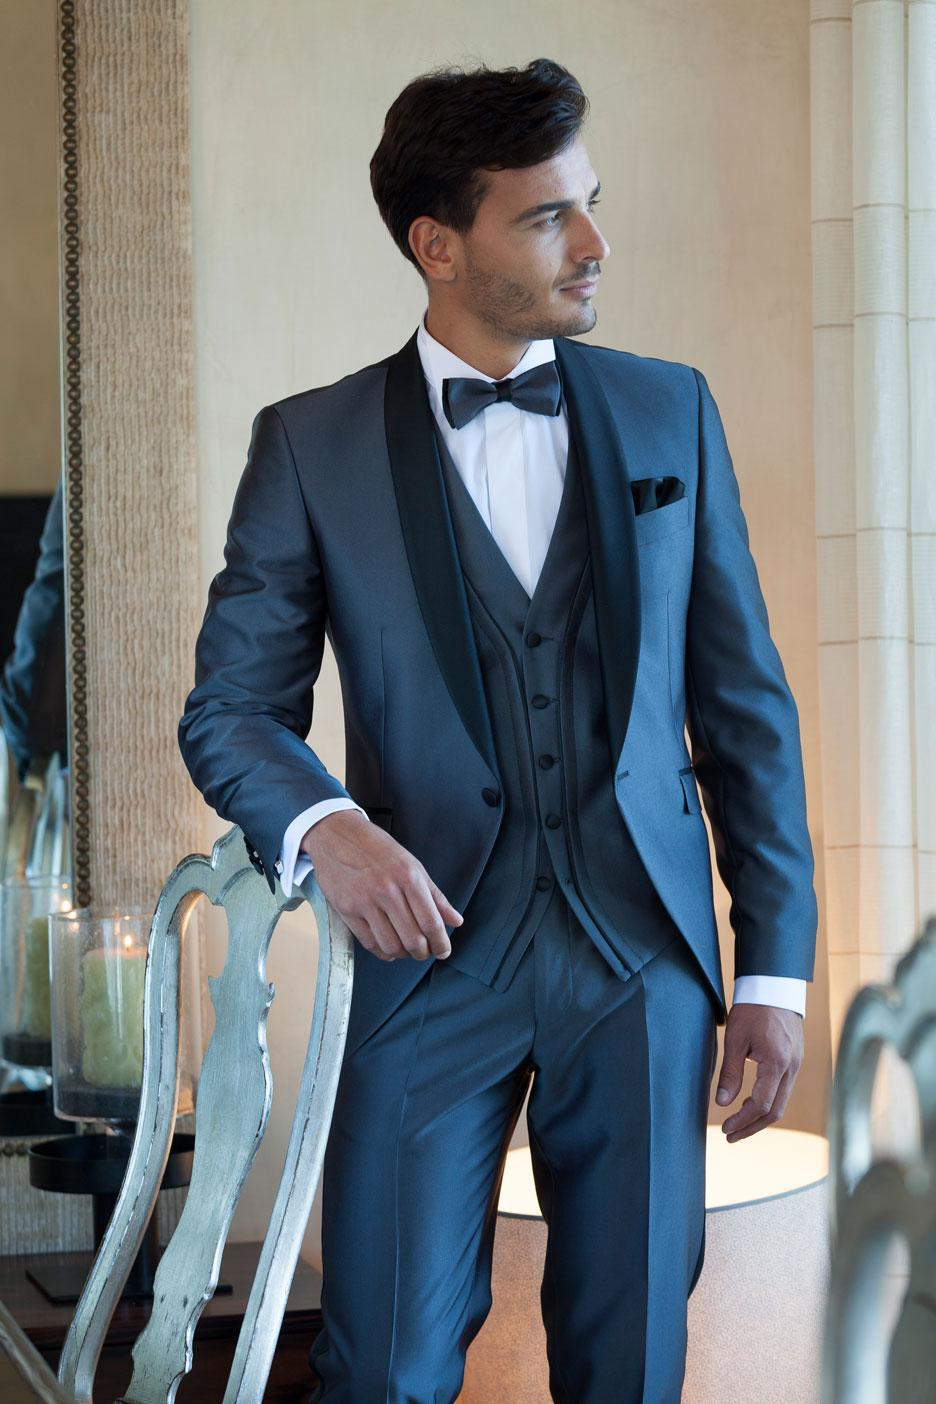 Shop for men's blue suits in all shades of blue including dark blue & navy blue. Find the latest men's designer blue suit styles from Men's Wearhouse.